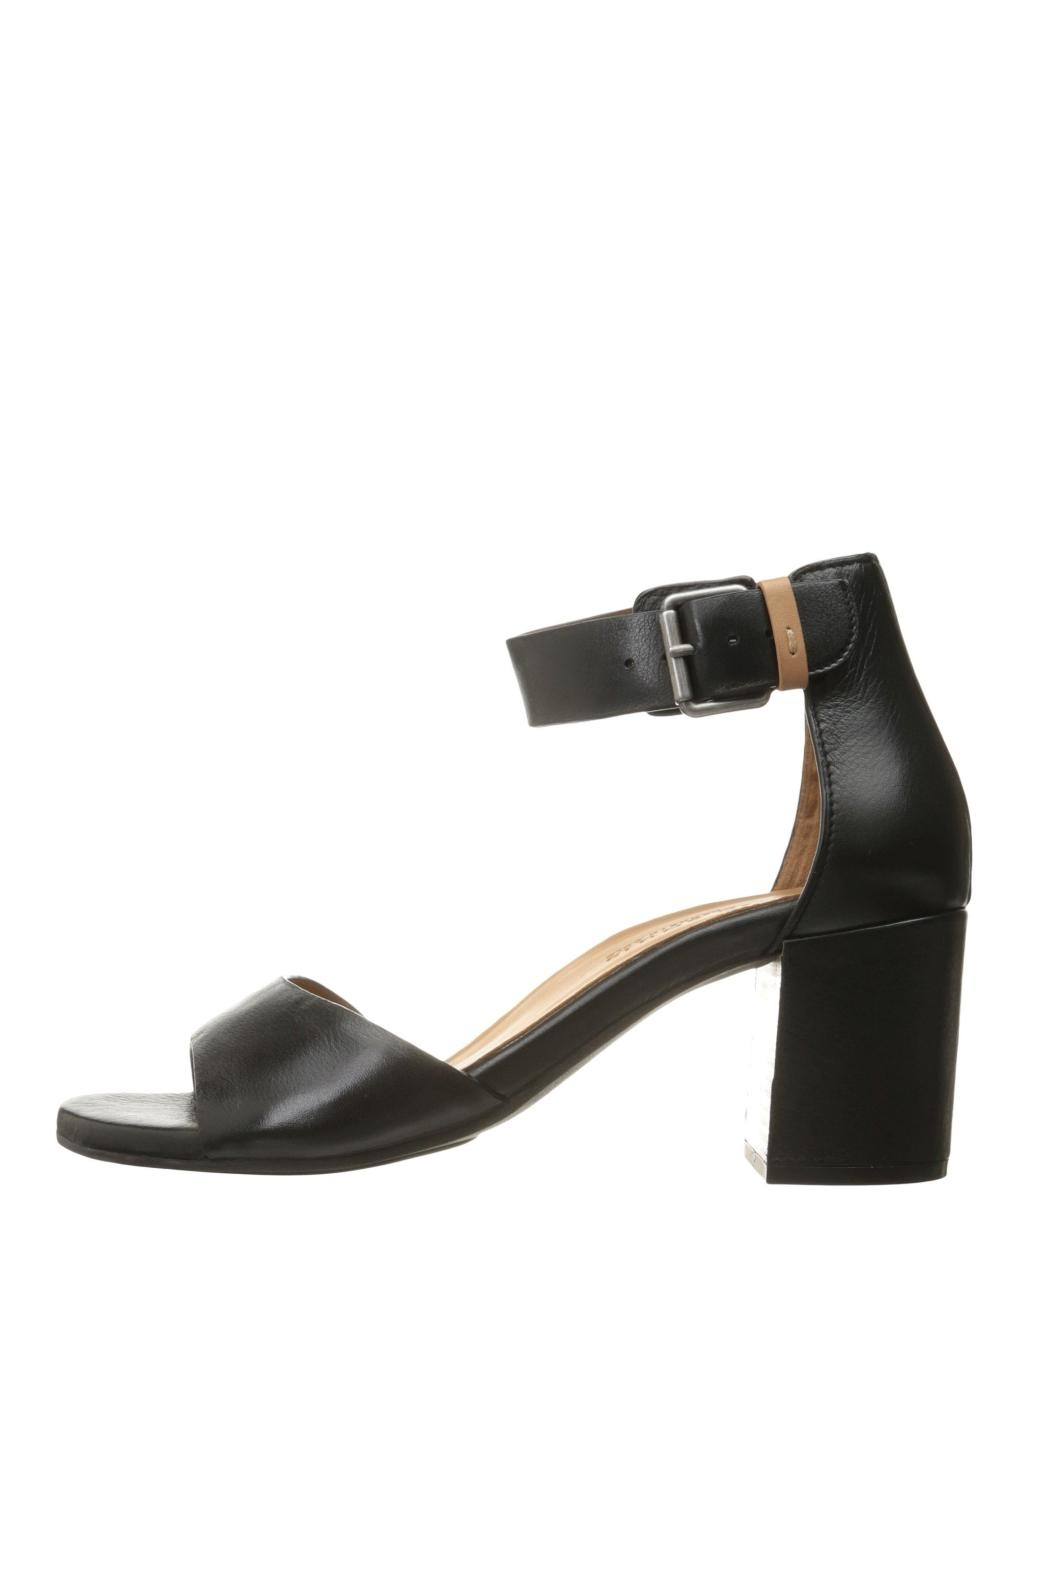 63ba665a1a8 Gentle Souls Christa Heel from New Jersey by ROXY SHOES — Shoptiques